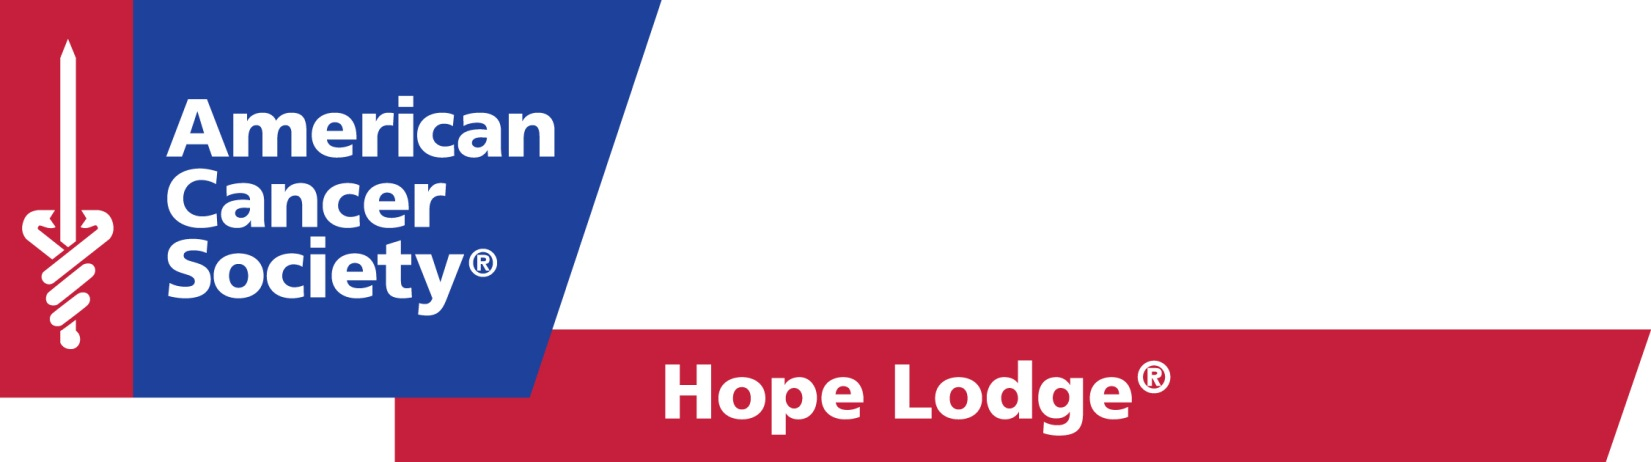 american cancer society - hope lodge omaha - Hope Lodge Nebraska is more than just a lodging facility. Hope Lodge provides a home away from home for cancer patients and their caregivers traveling for treatment, eliminating many emotional and financial concerns and allowing patients to focus on what is most important, getting well.